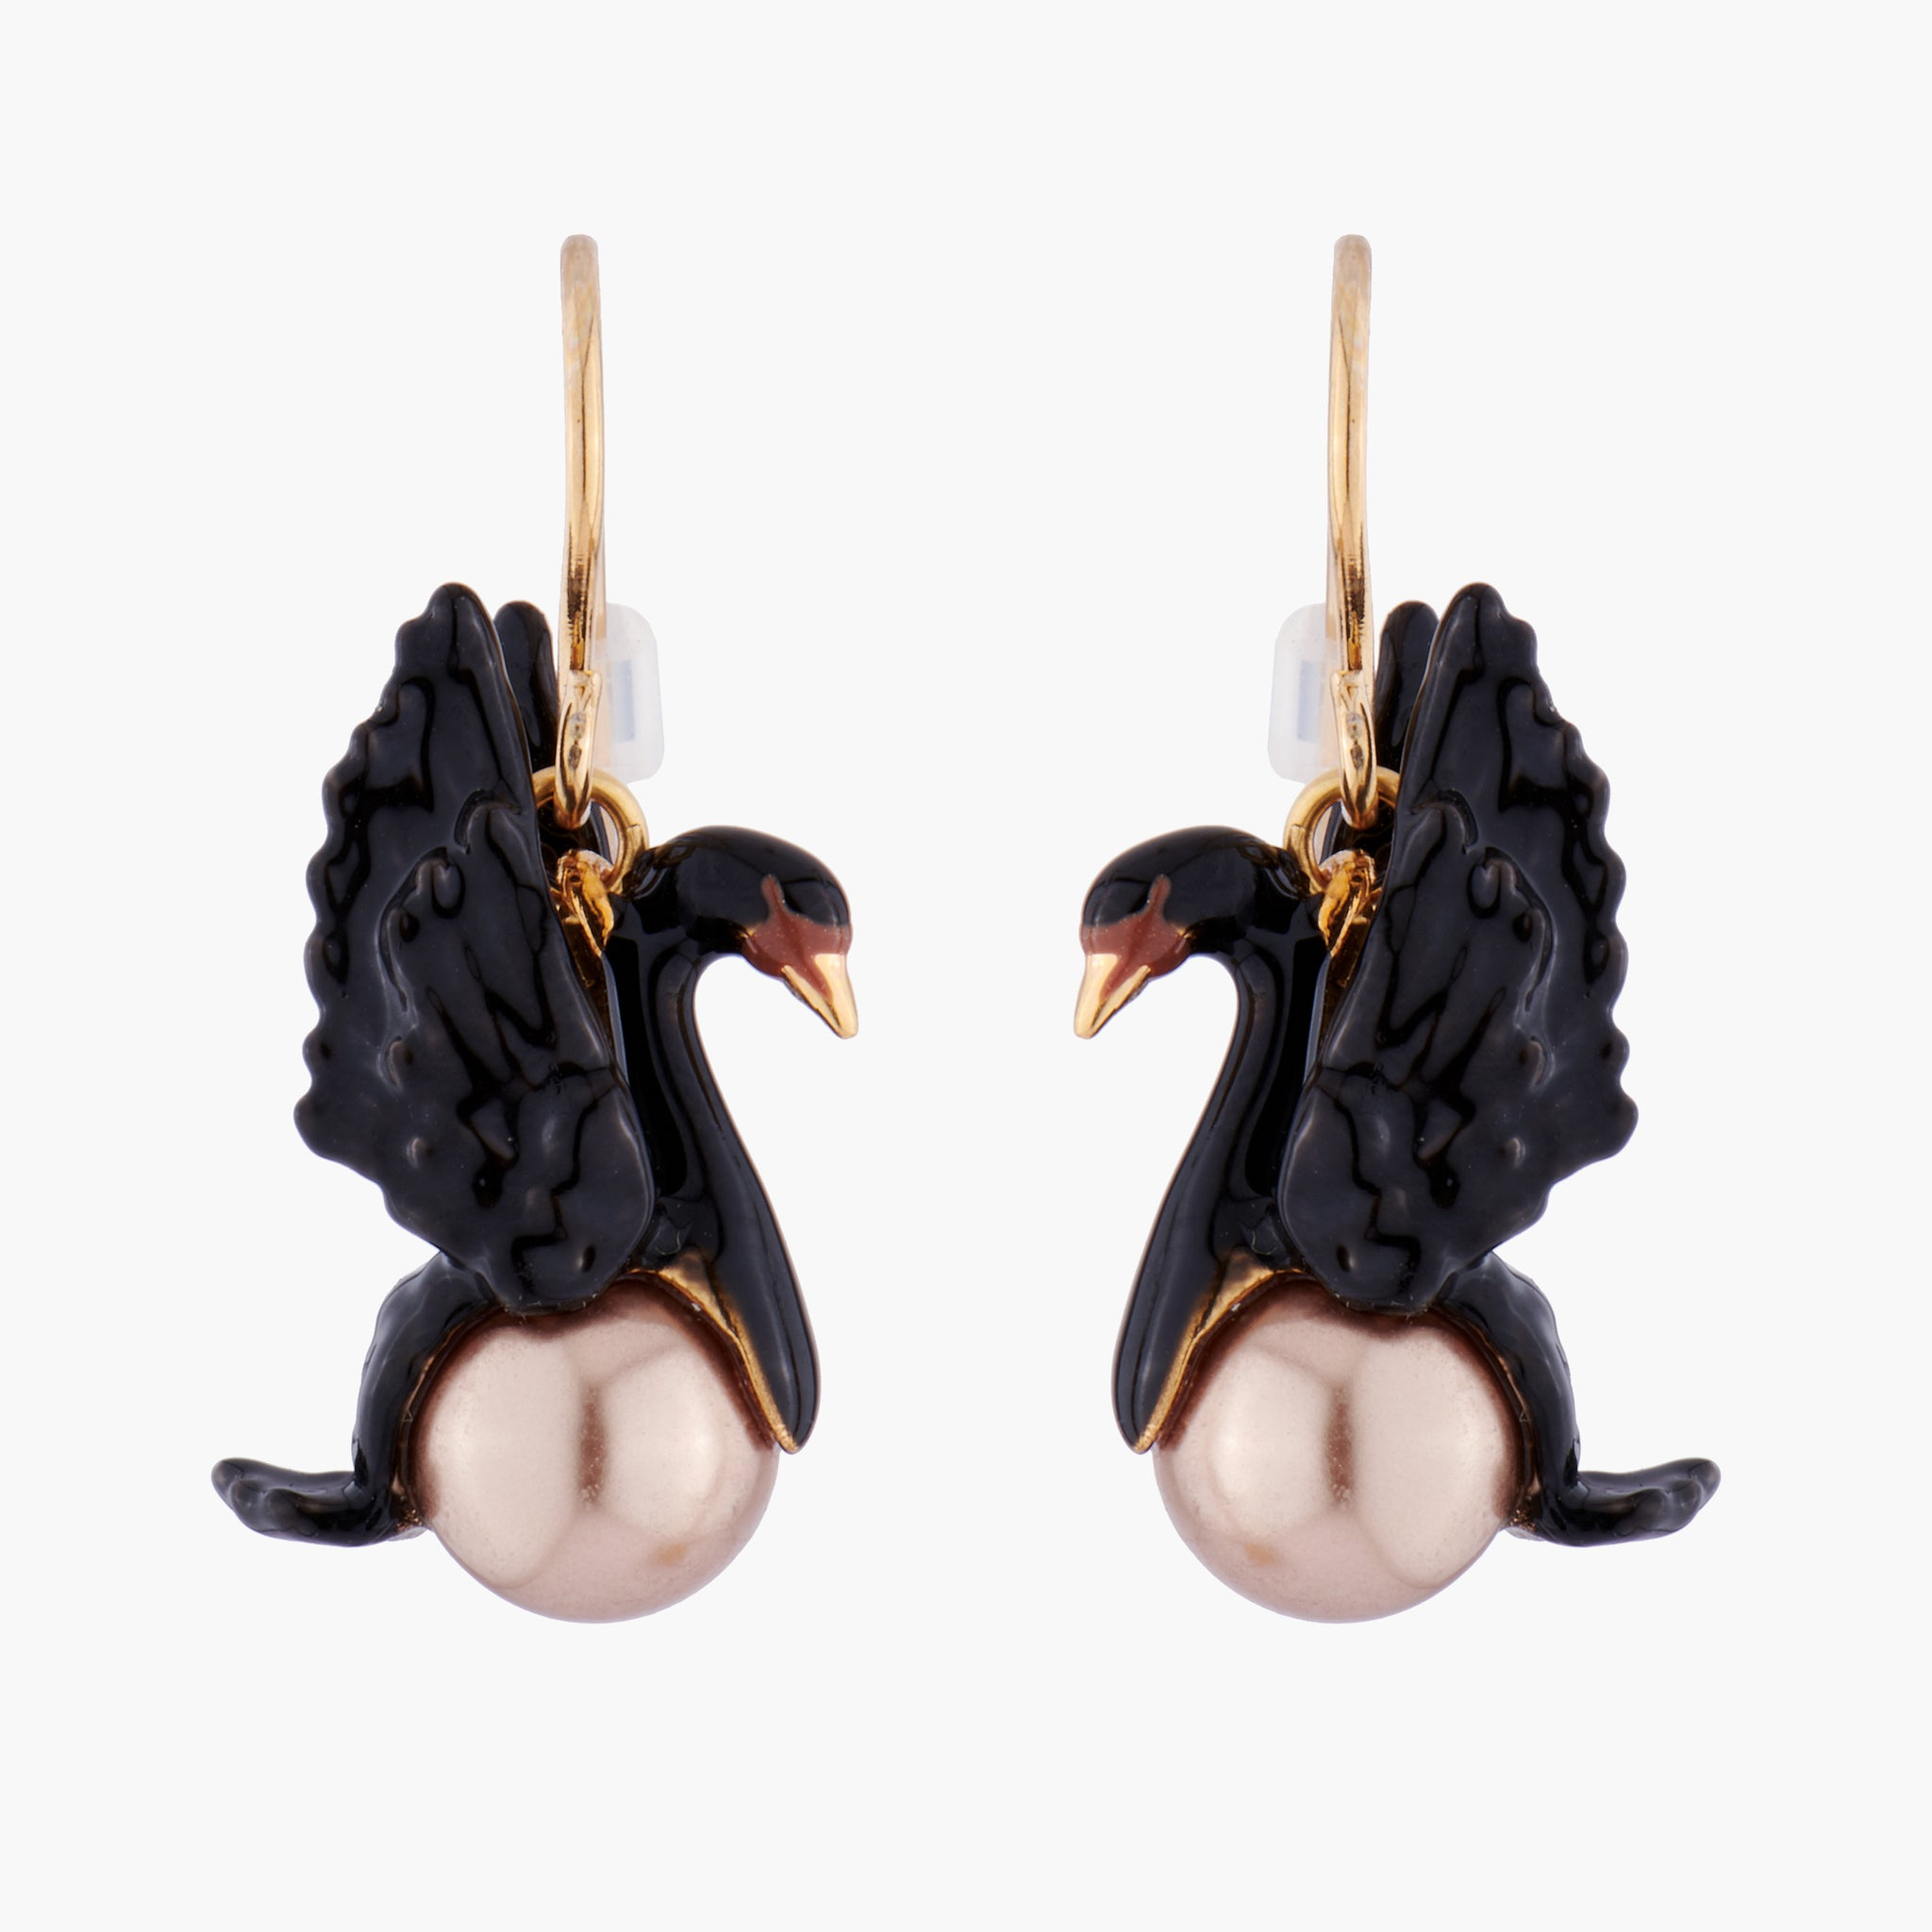 Black Swan and Baroque Pearl Dangling Hook Earring